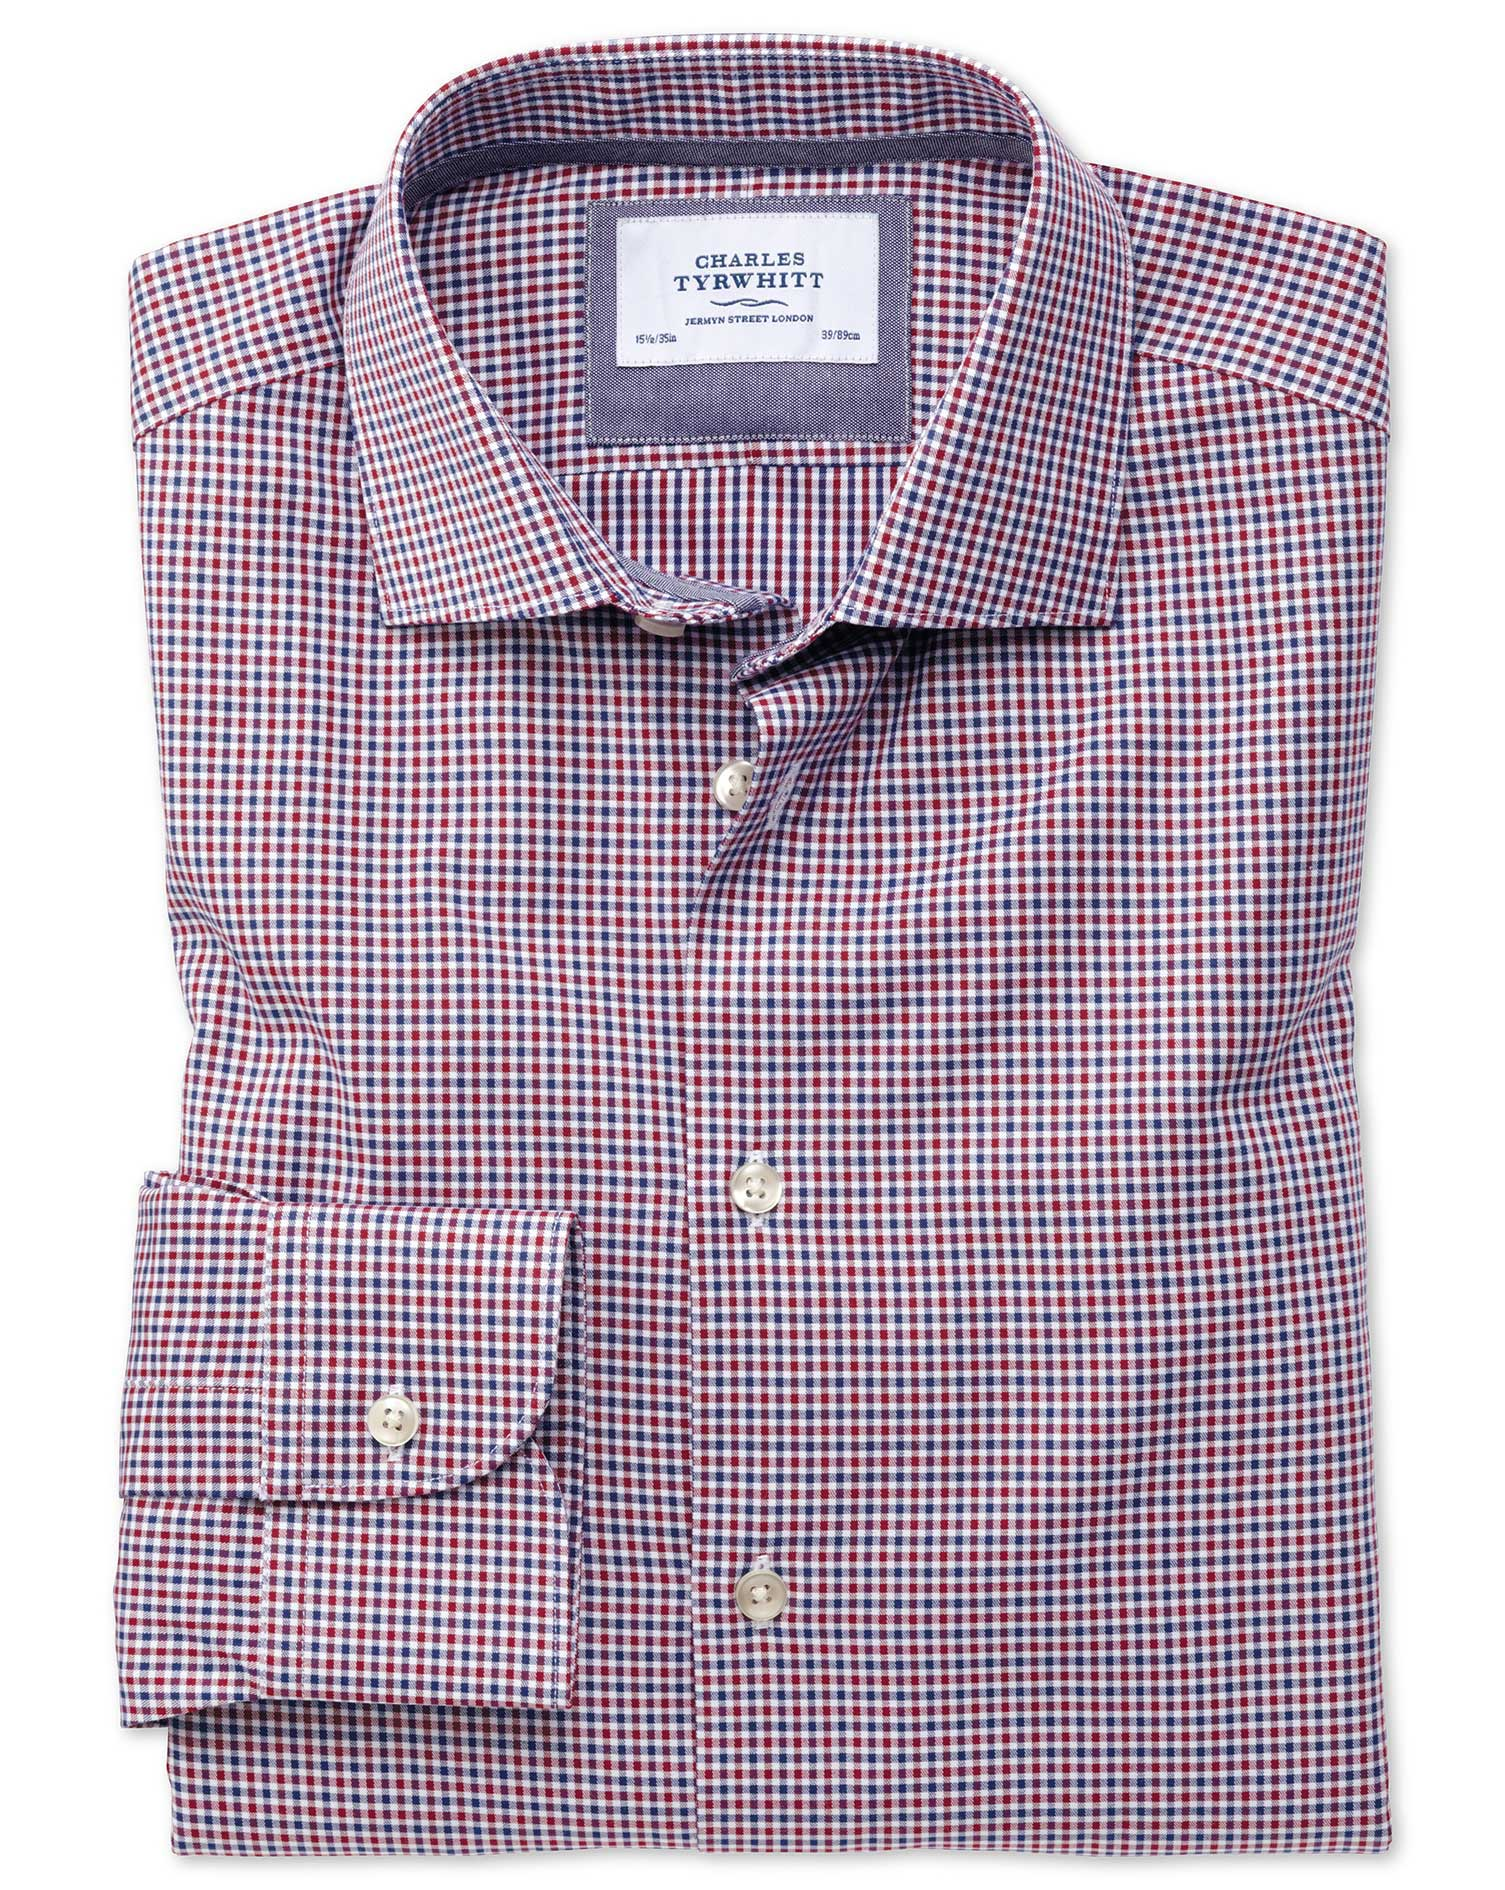 Slim Fit Semi-Cutaway Business Casual Gingham Red and Navy Cotton Formal Shirt Single Cuff Size 16.5